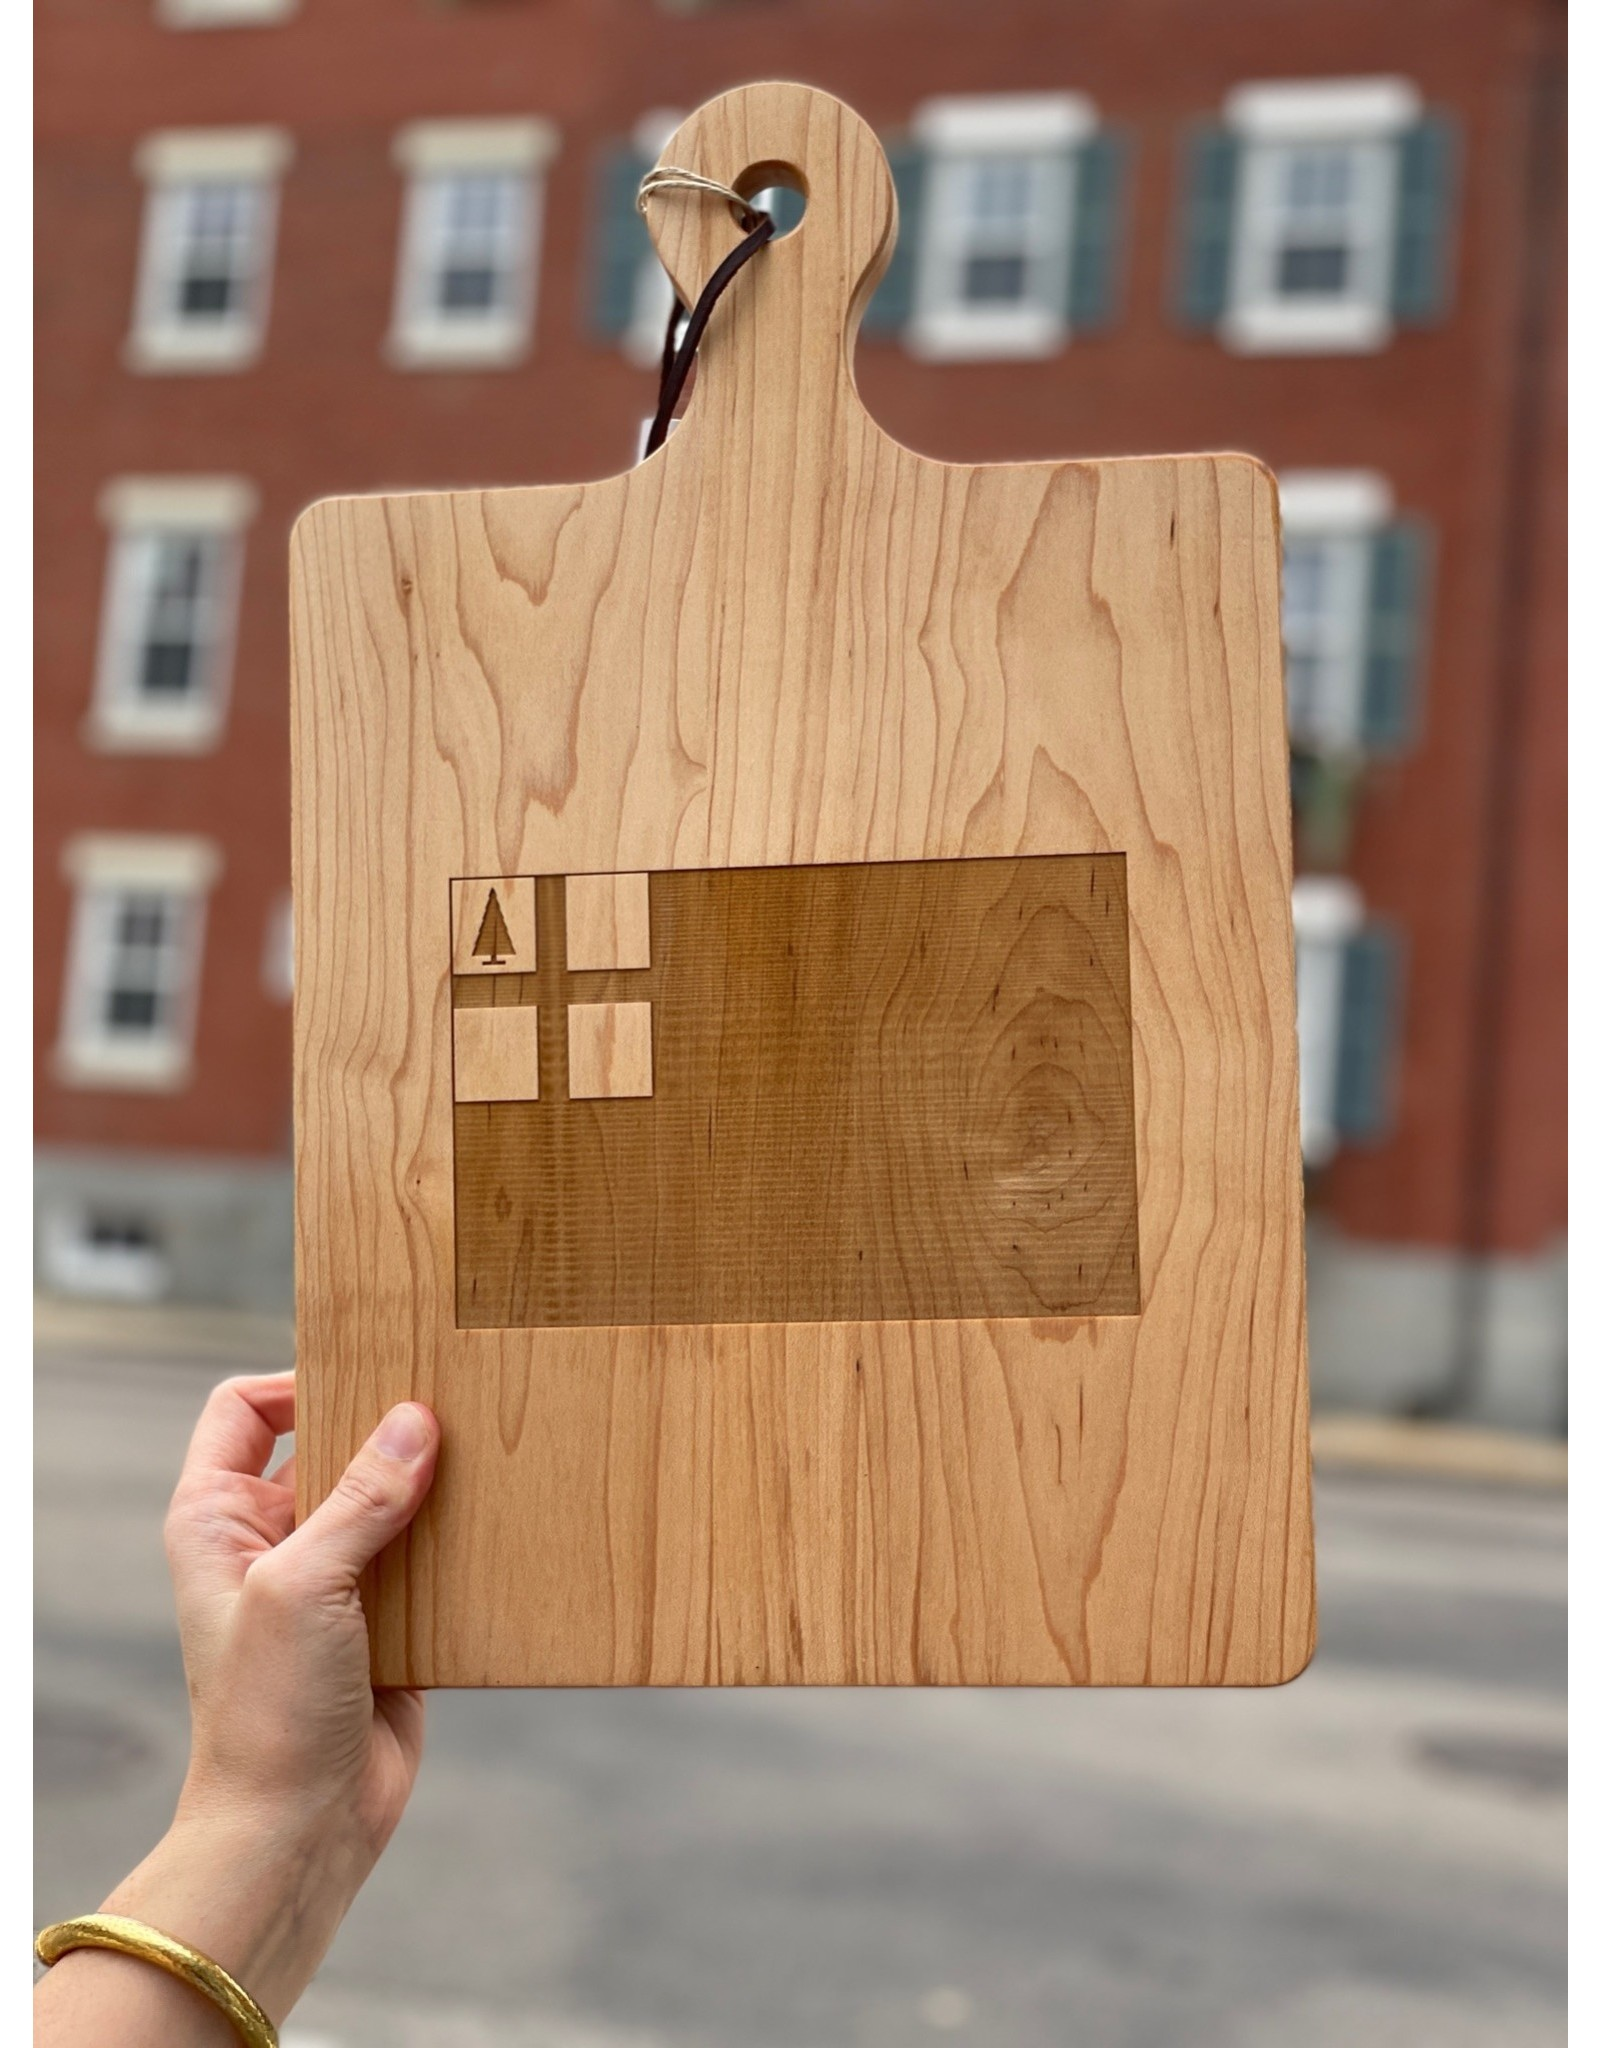 Maple Leaf at Home Bunker Hill Flag Handled Maple Artisan Board 16x10